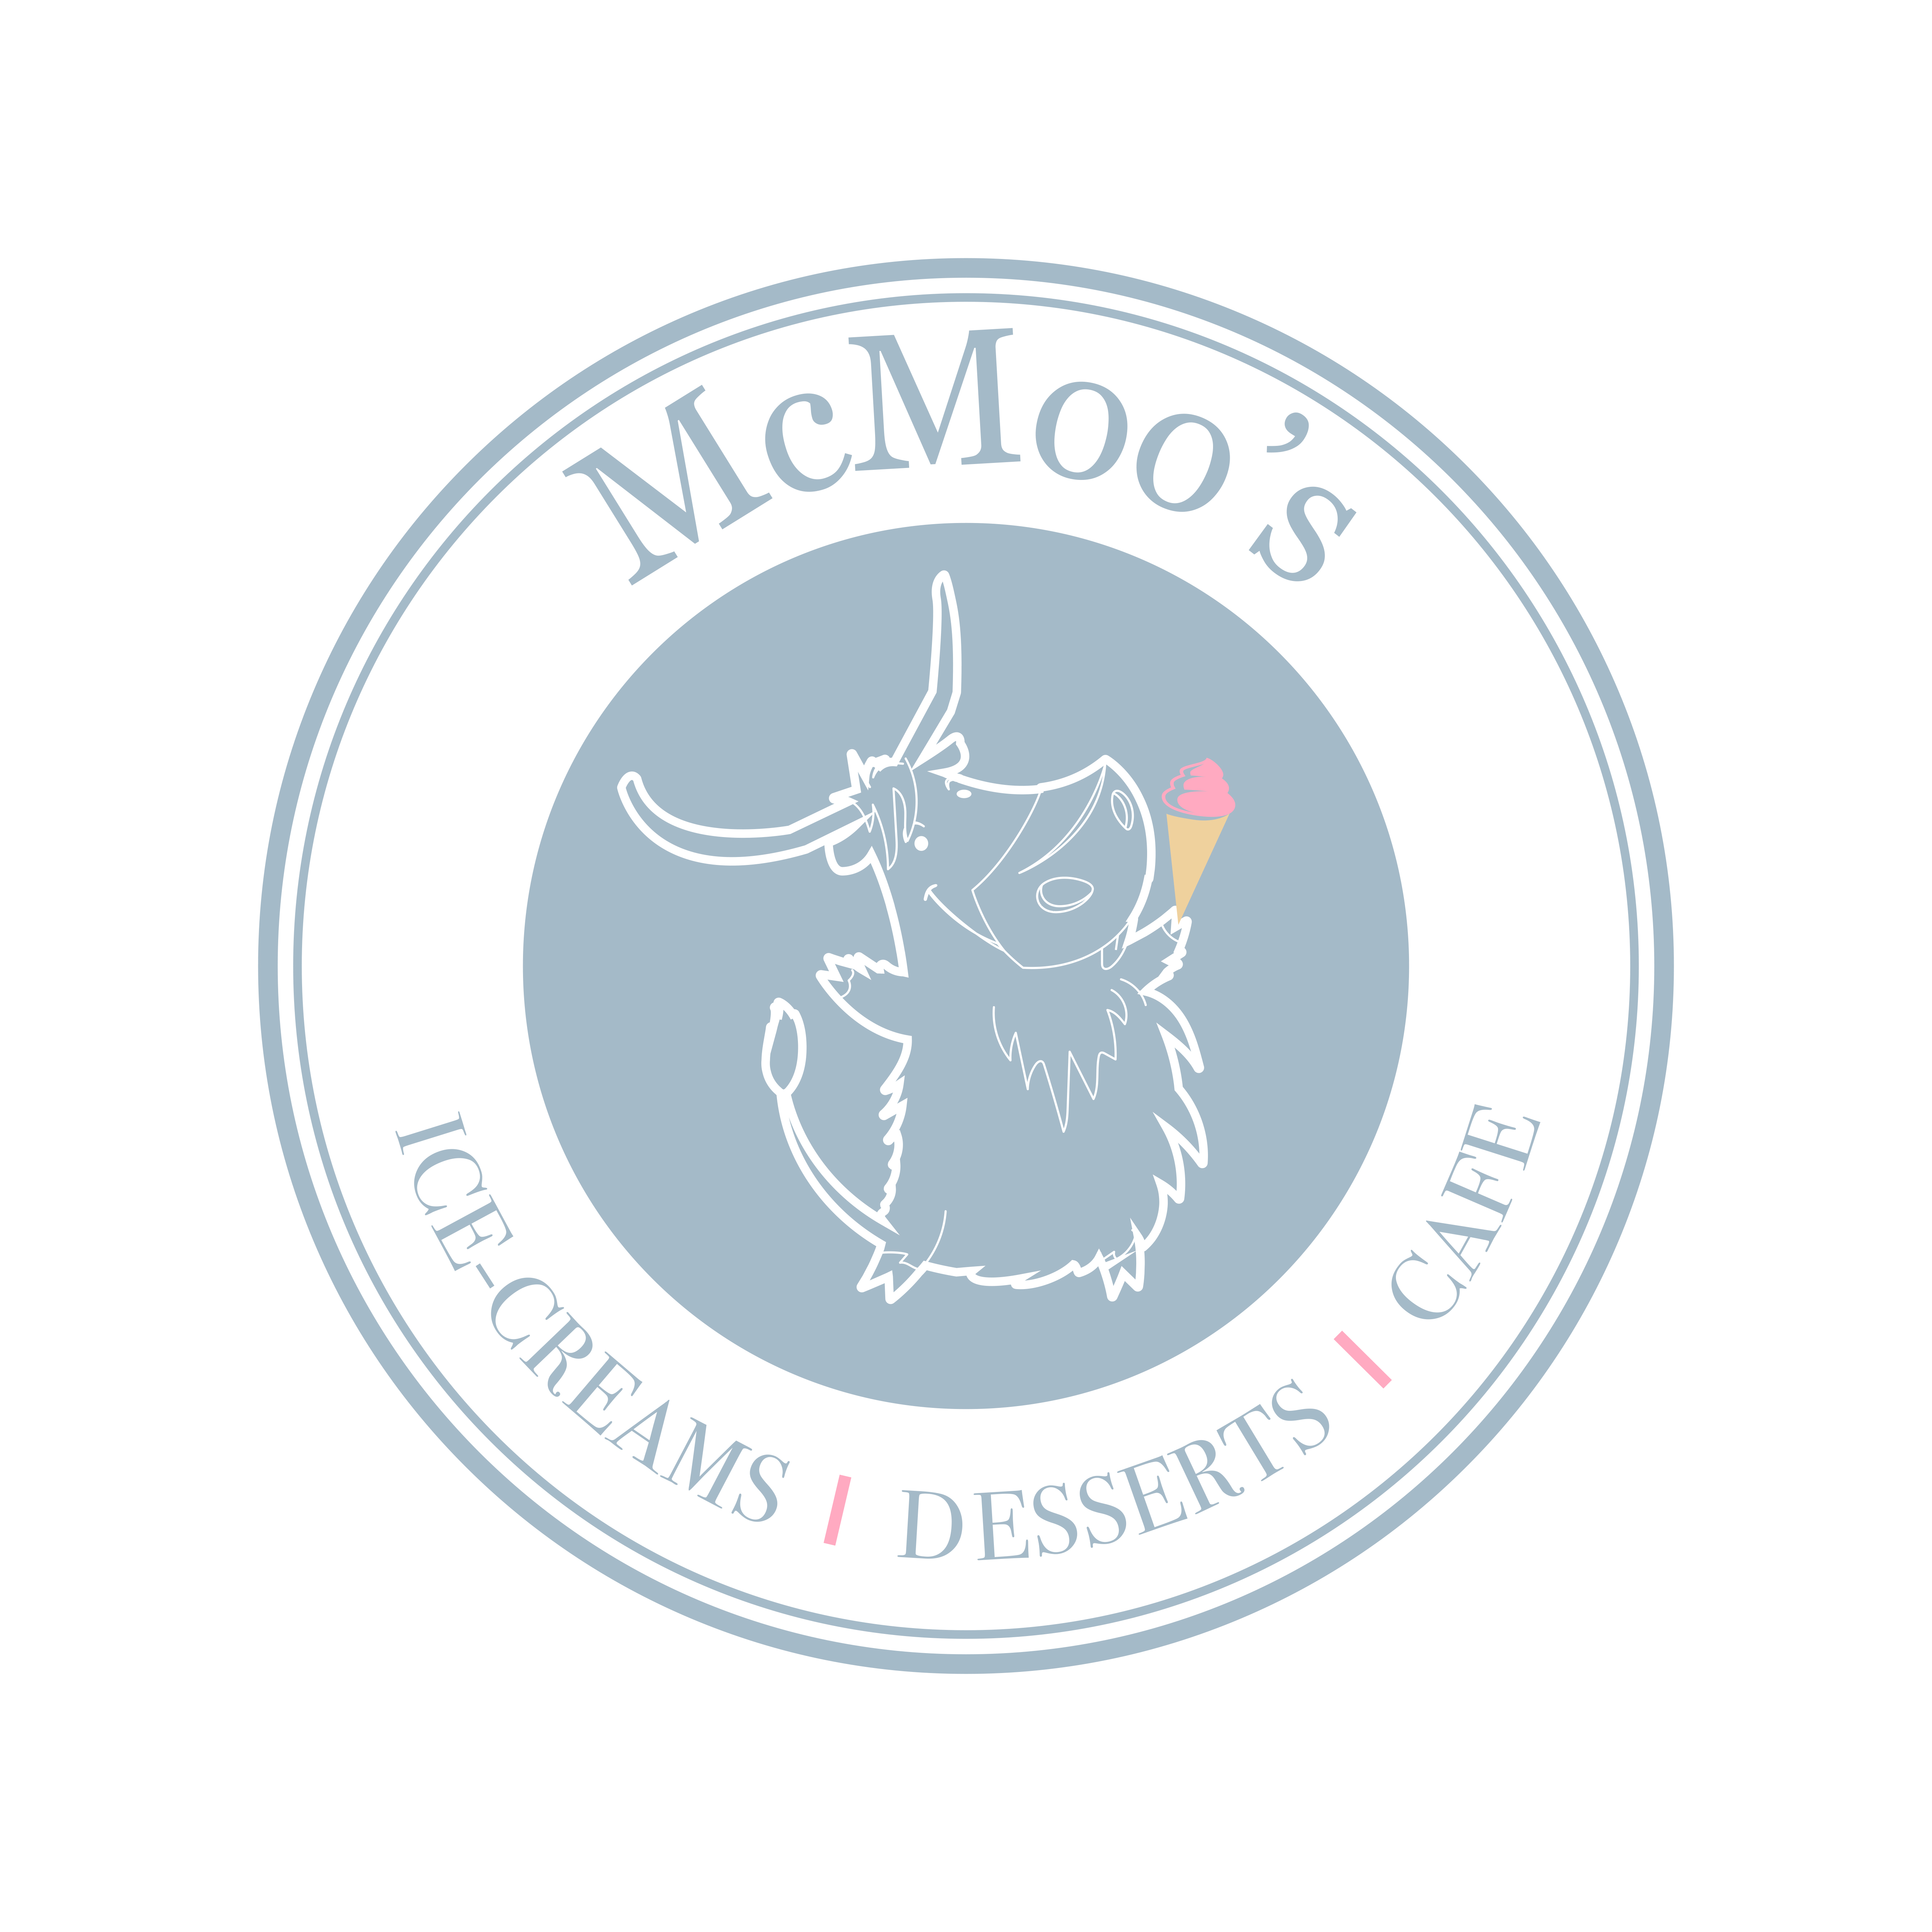 McMoo's icecream parlour